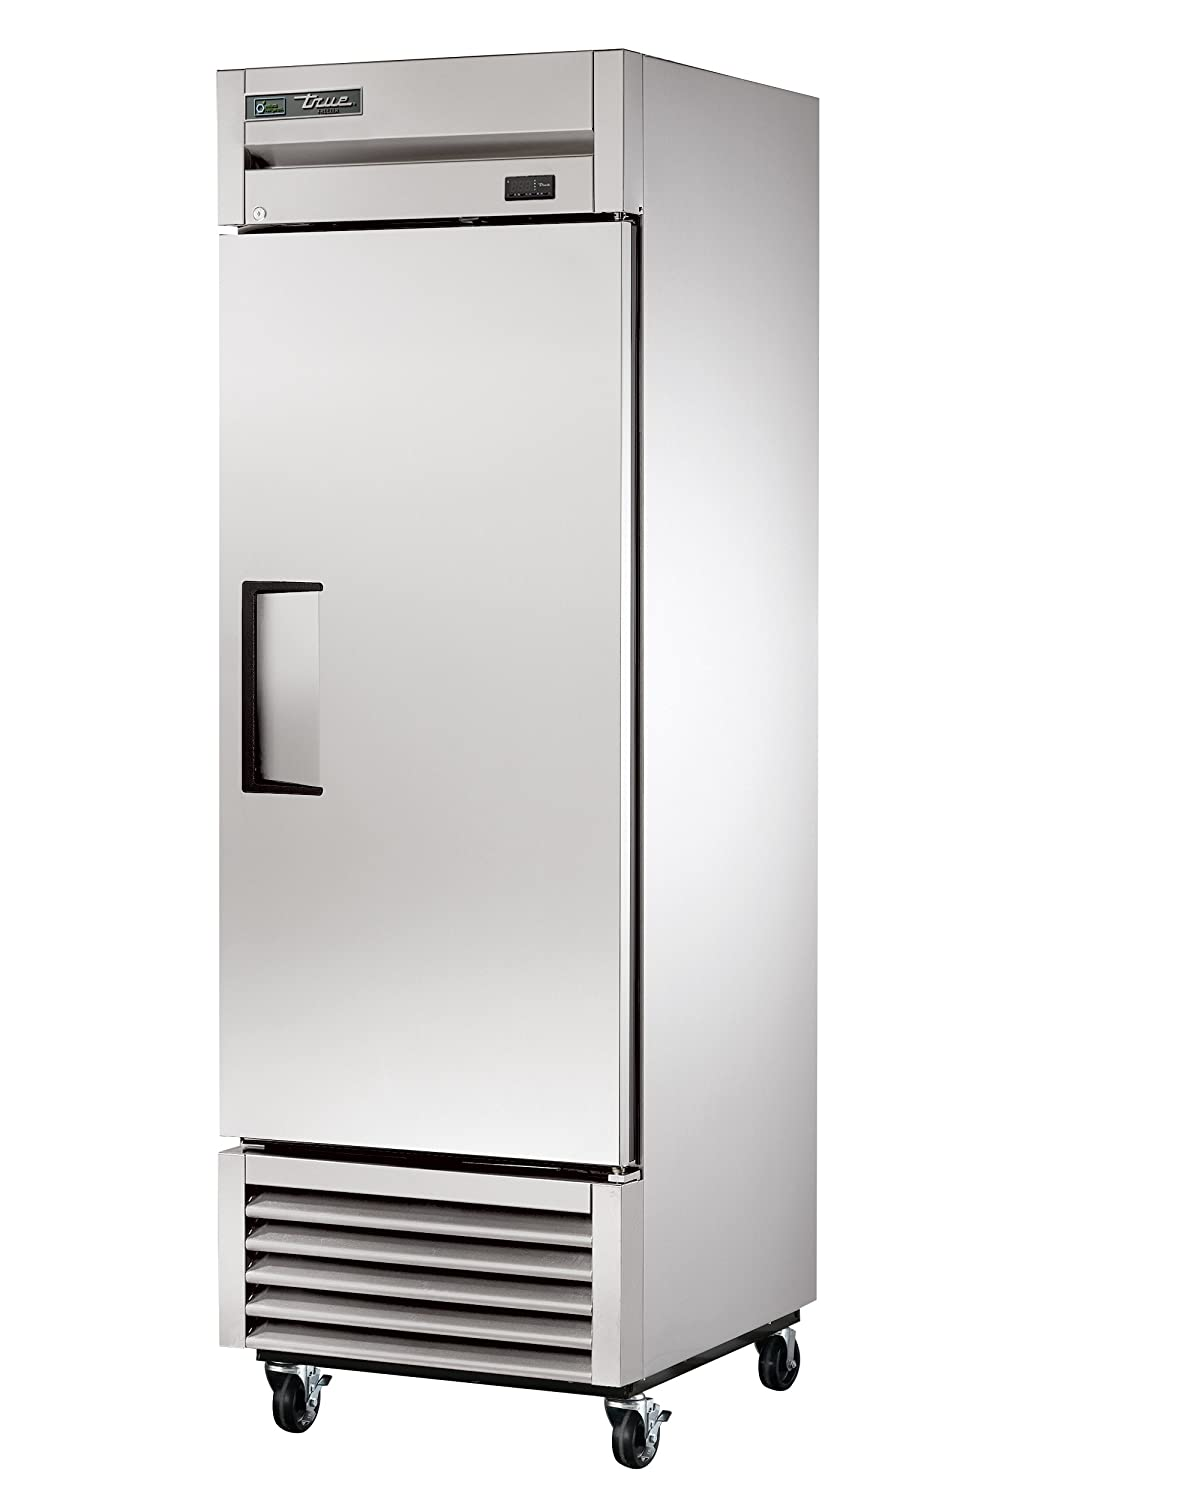 "True T-23-HC Reach-in Solid Swing Door Refrigerator with Hydrocarbon Refrigerant, Holds 33 Degree F to 38 Degree F, 78.375"" Height, 29.5"" Width, 27"" Length"